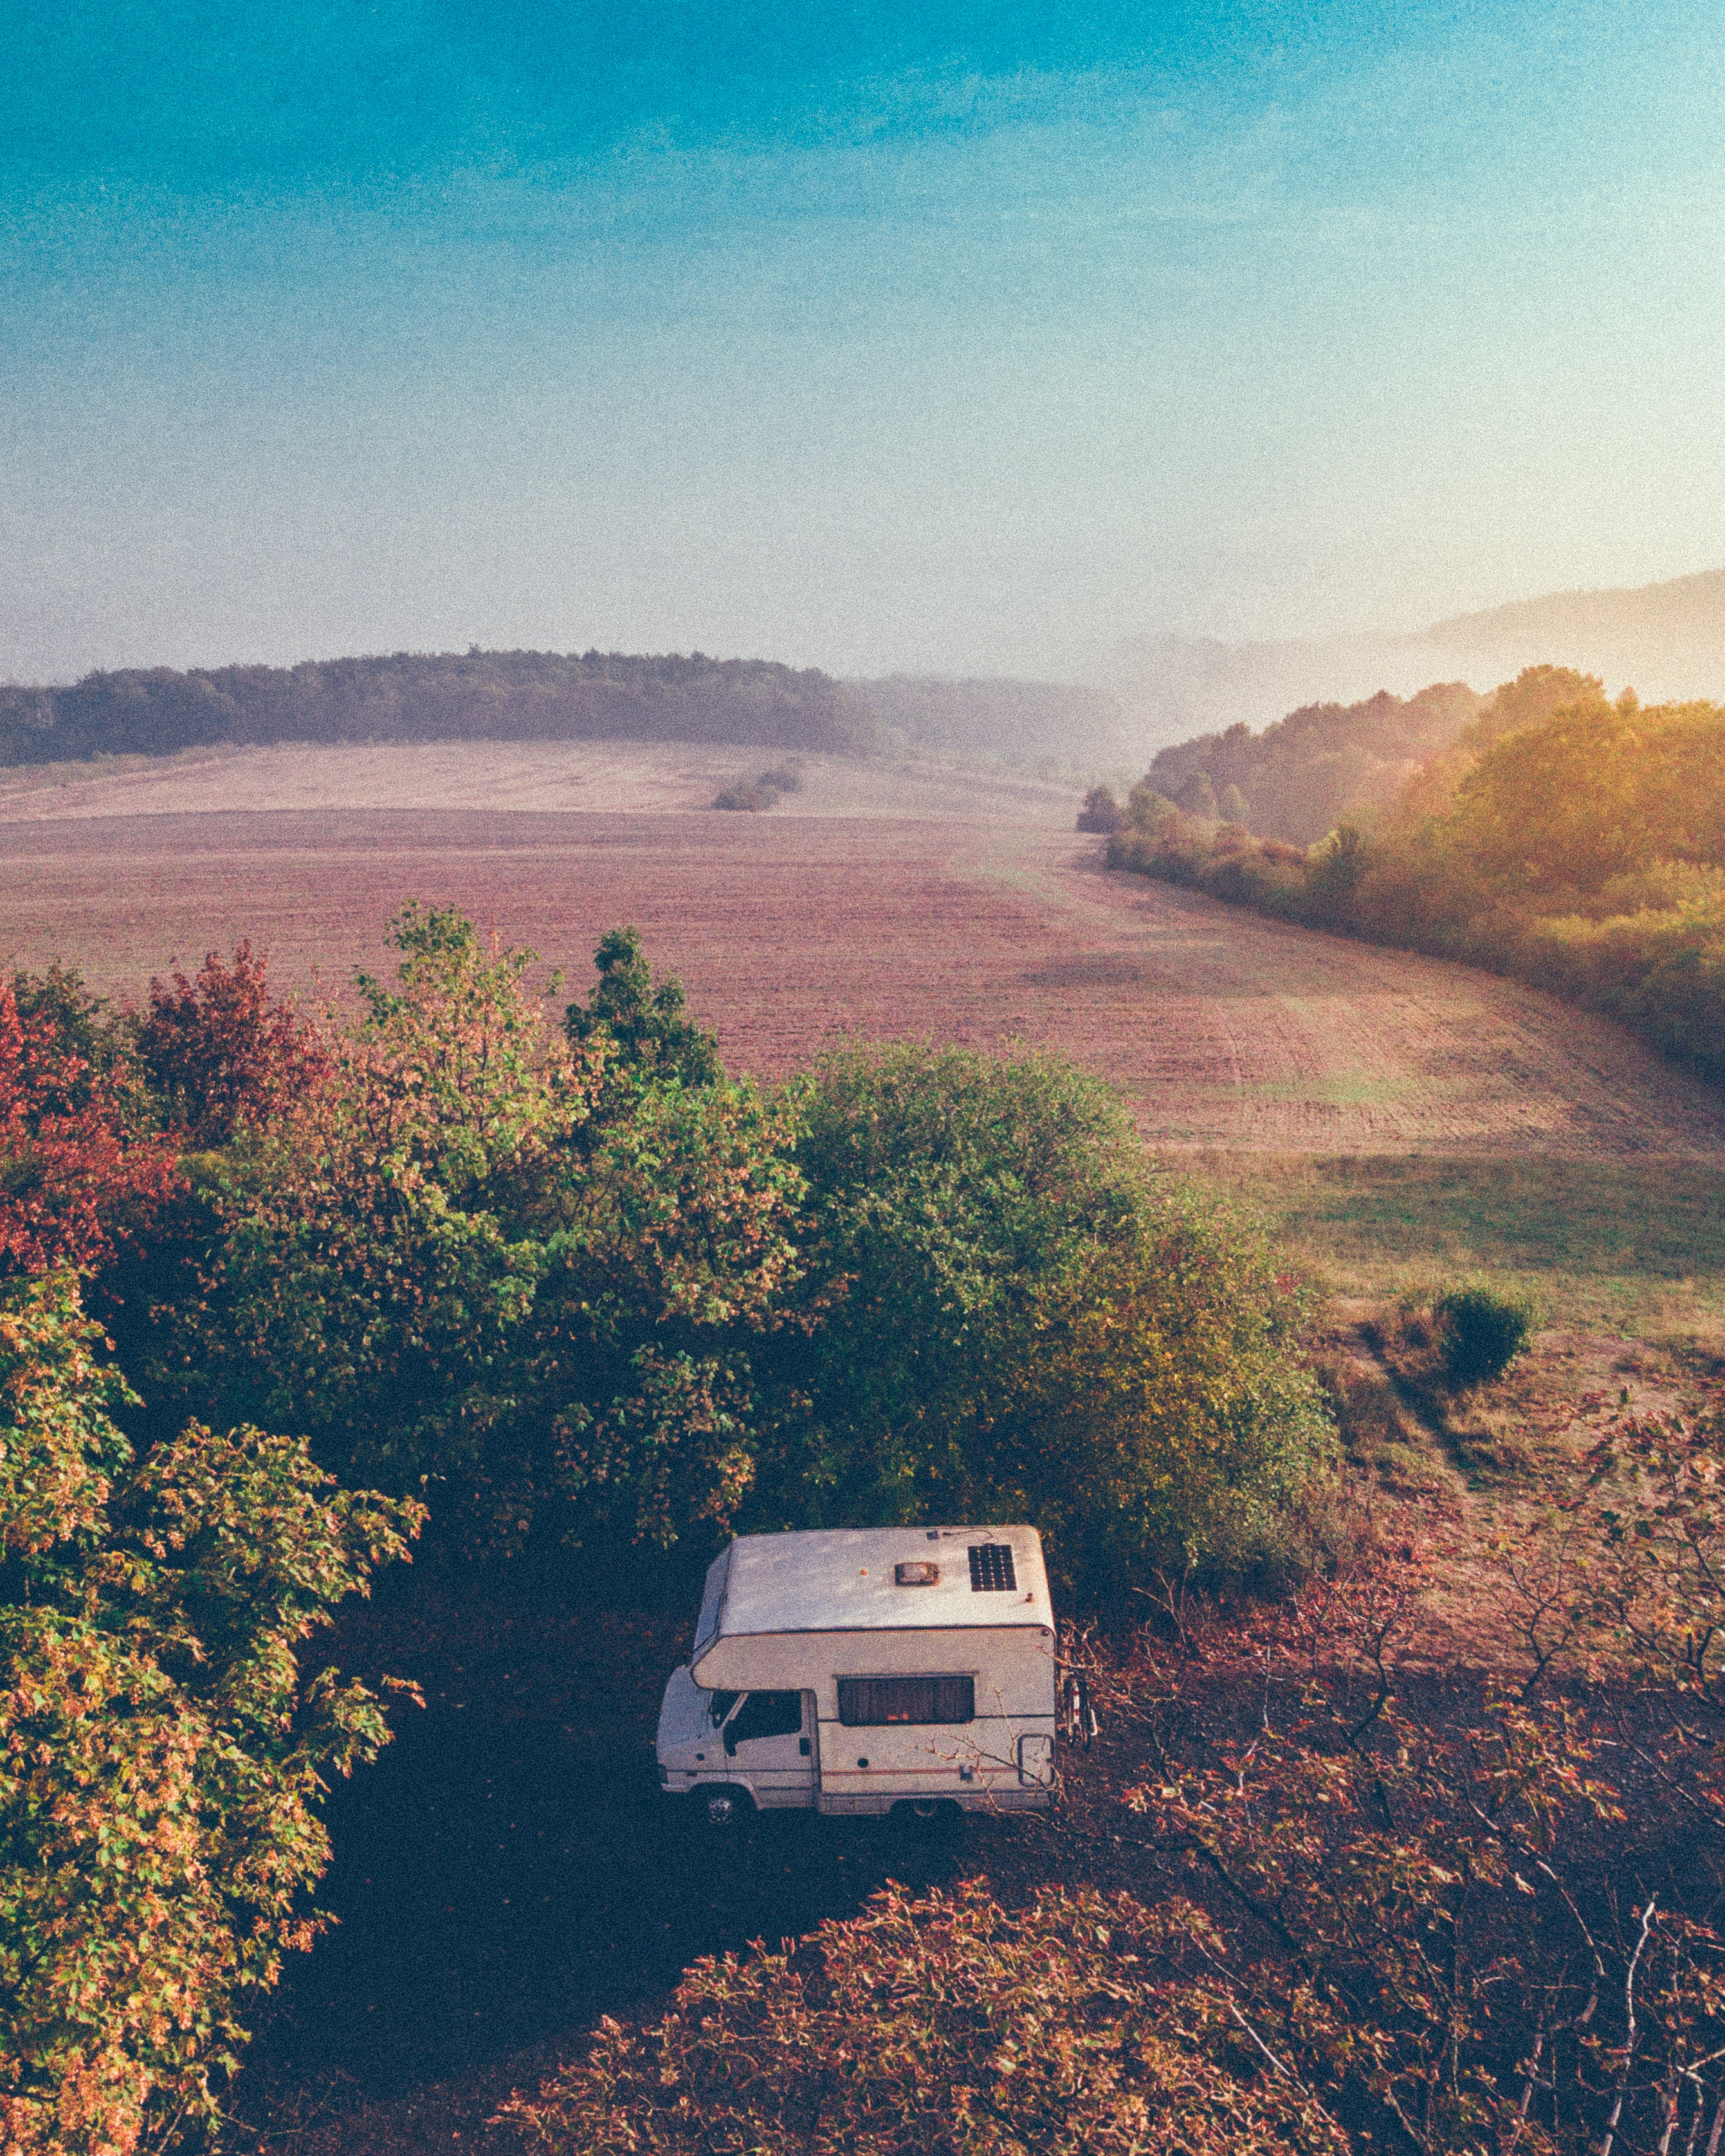 white camping van parked near trees